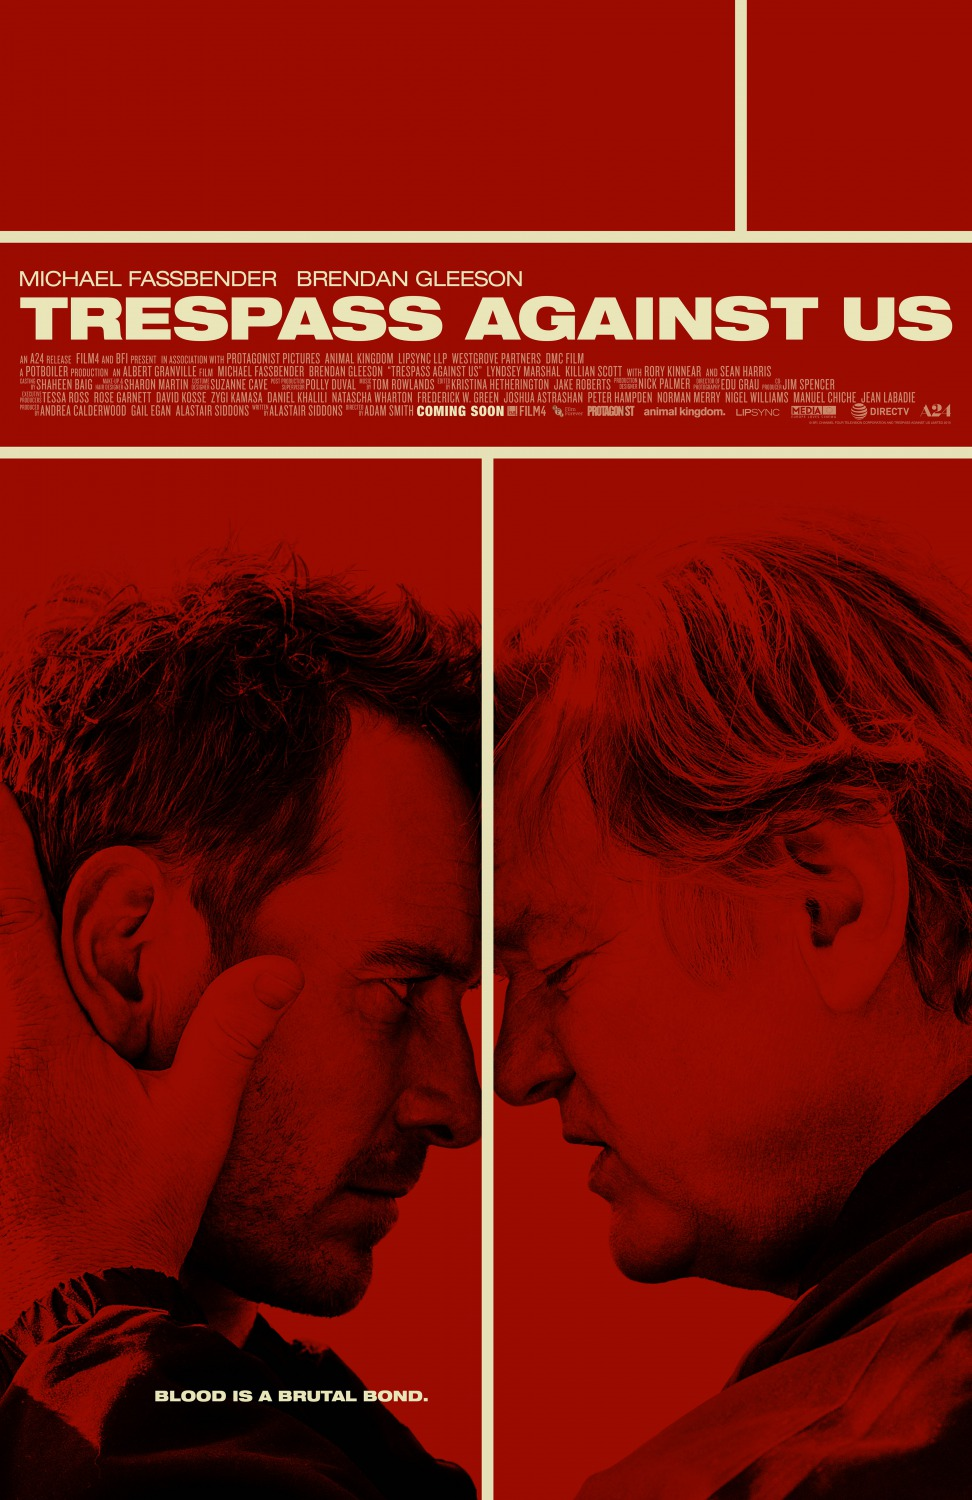 085 - TOP 100 Movie Poster 2016